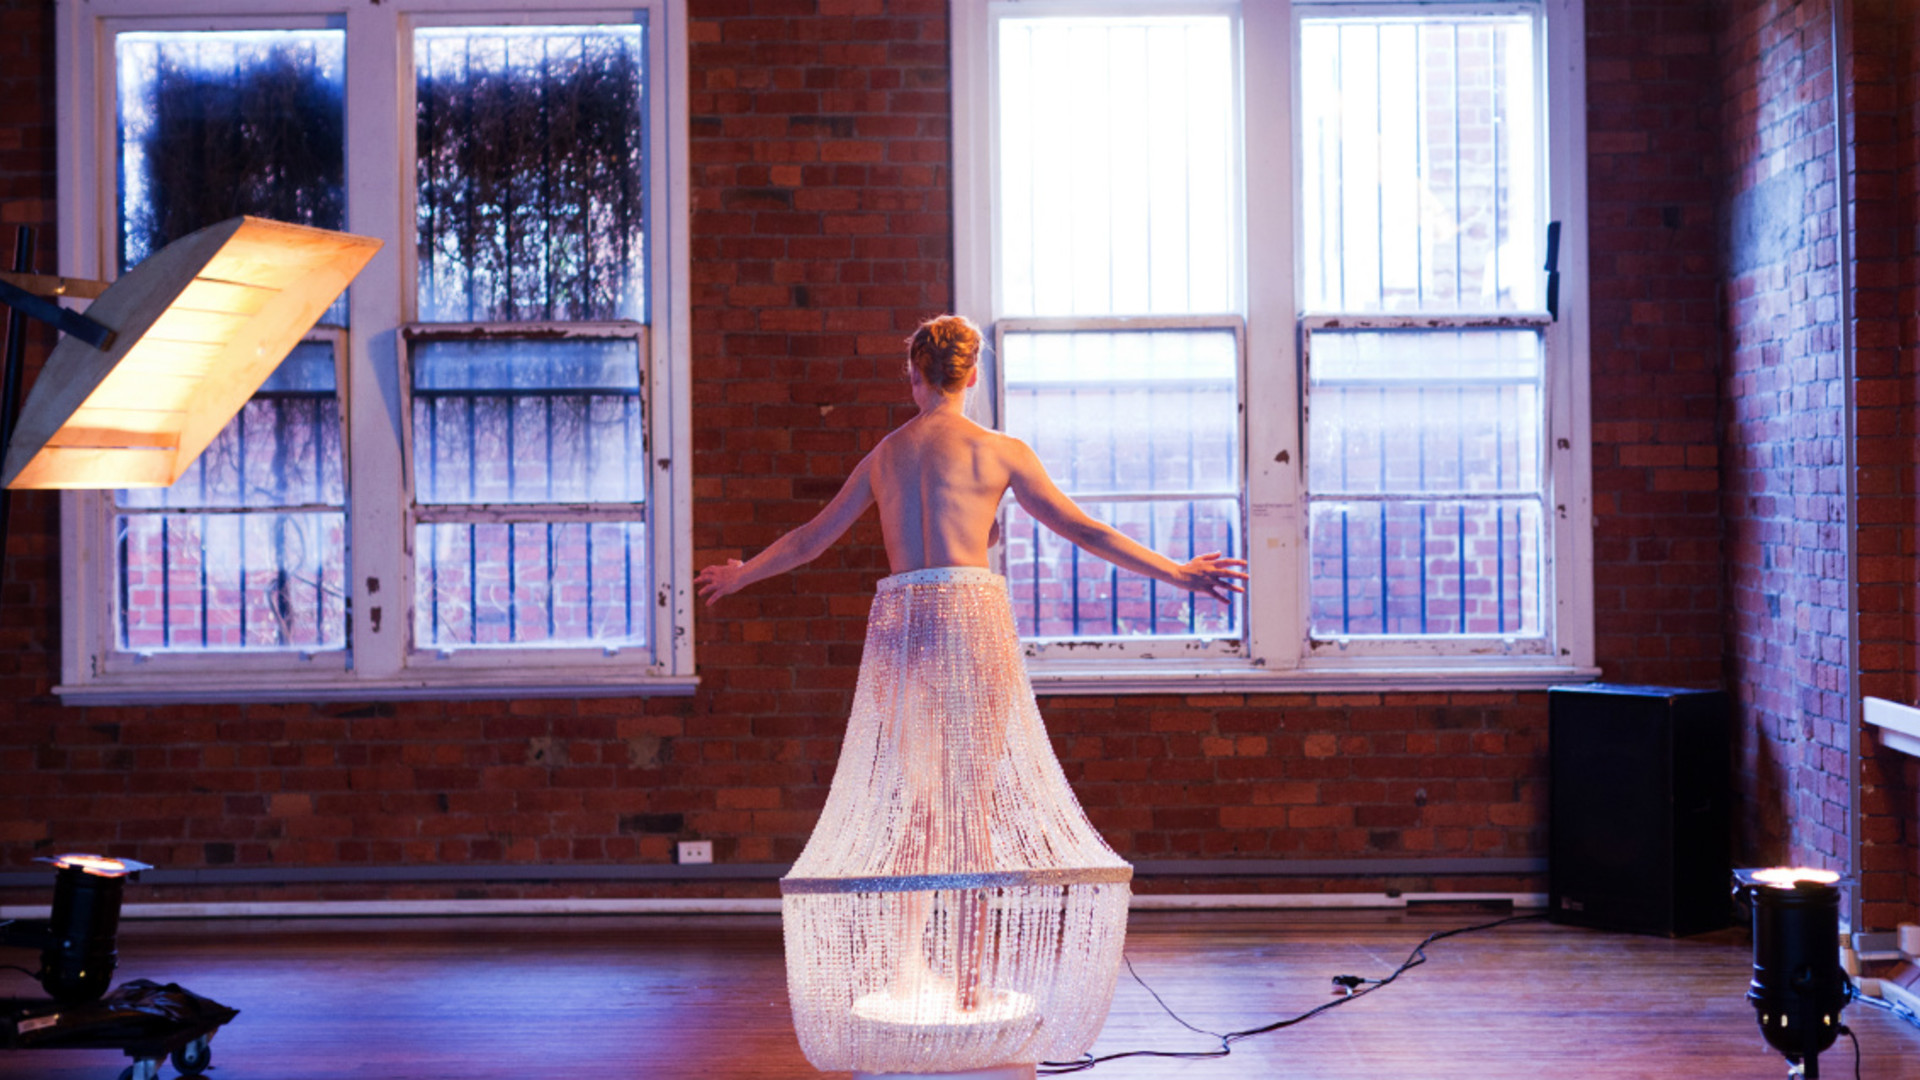 A topless woman seen from behind wearing a chandelier as a dress stands on a small white podium with a large square light to her left.